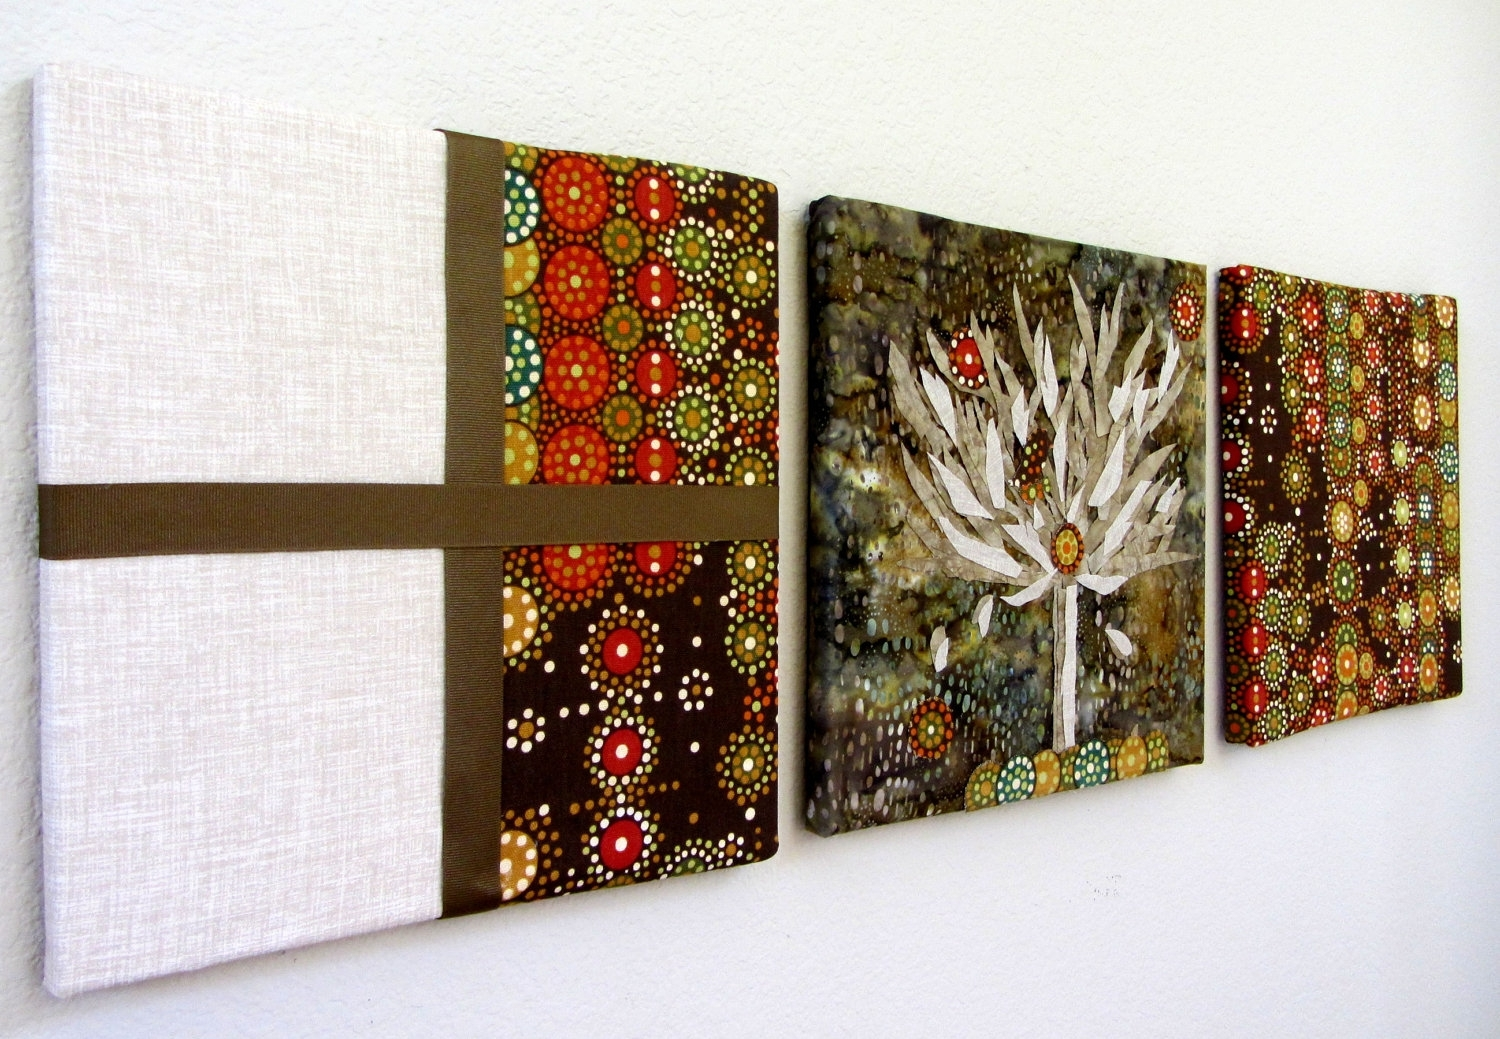 Creative Wall Art #10373 Regarding Current Contemporary Textile Wall Art (View 5 of 15)